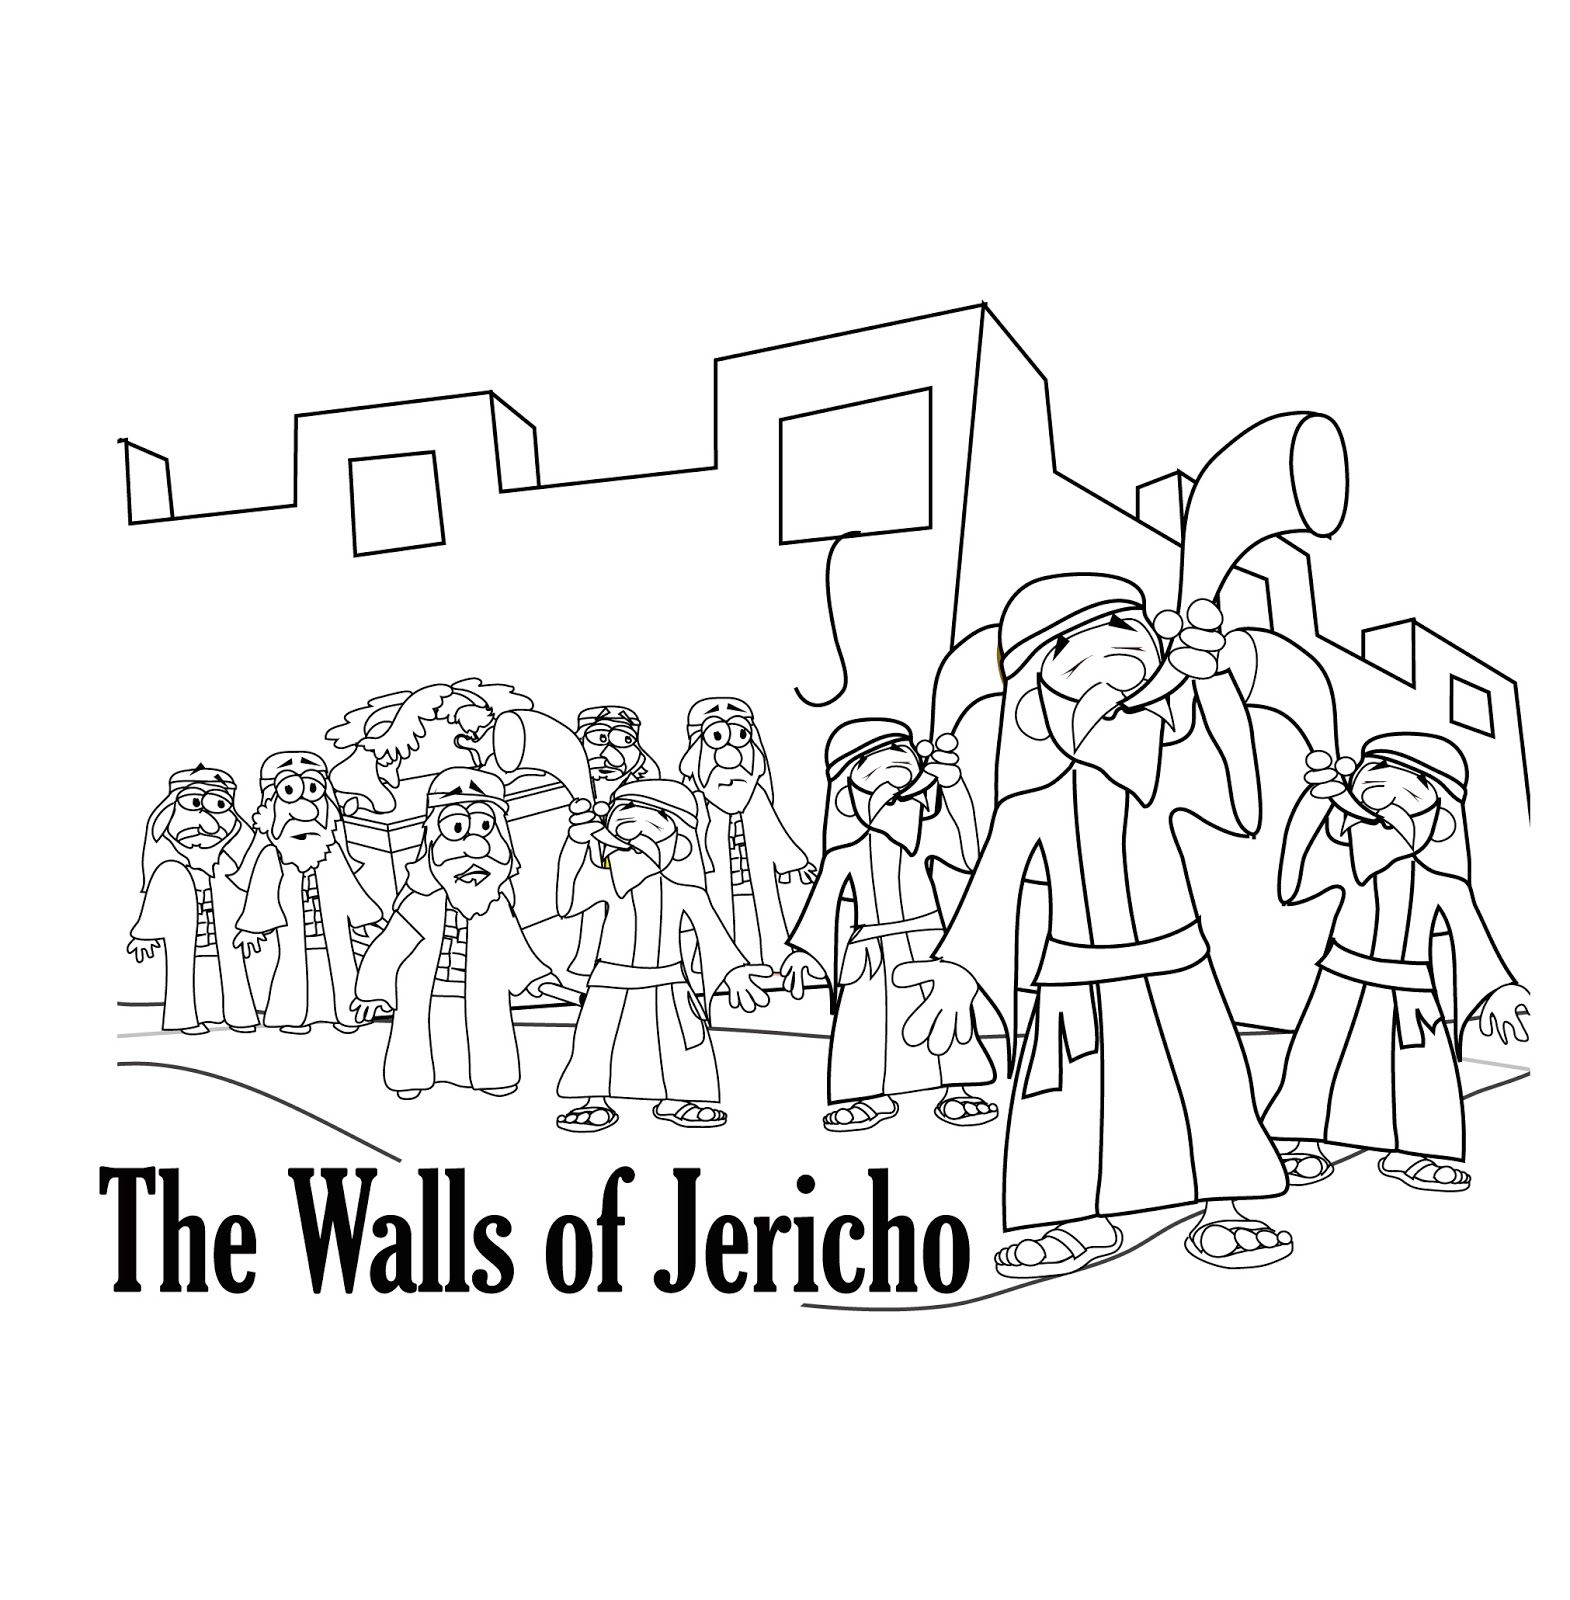 battle of jericho coloring page coloring pages battle of jericho coloring home page jericho battle of coloring